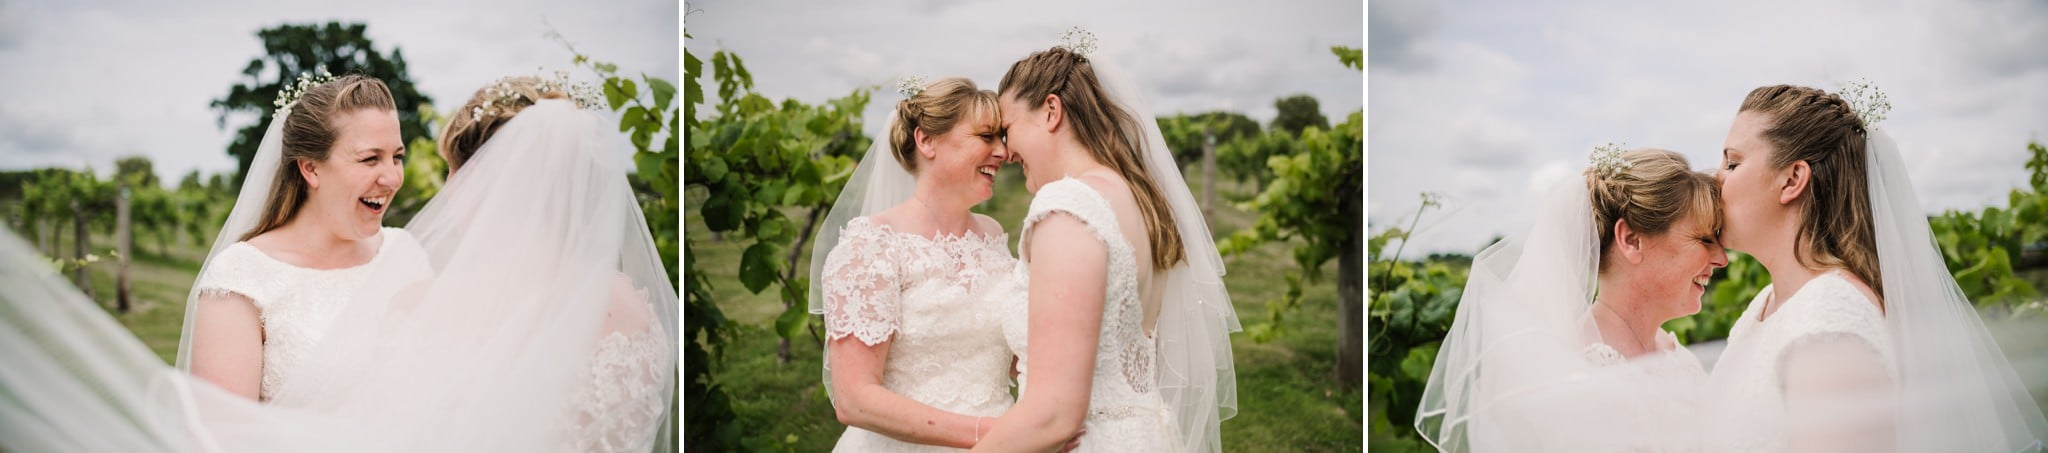 Gay brides at Three Choirs Vineyard wedding